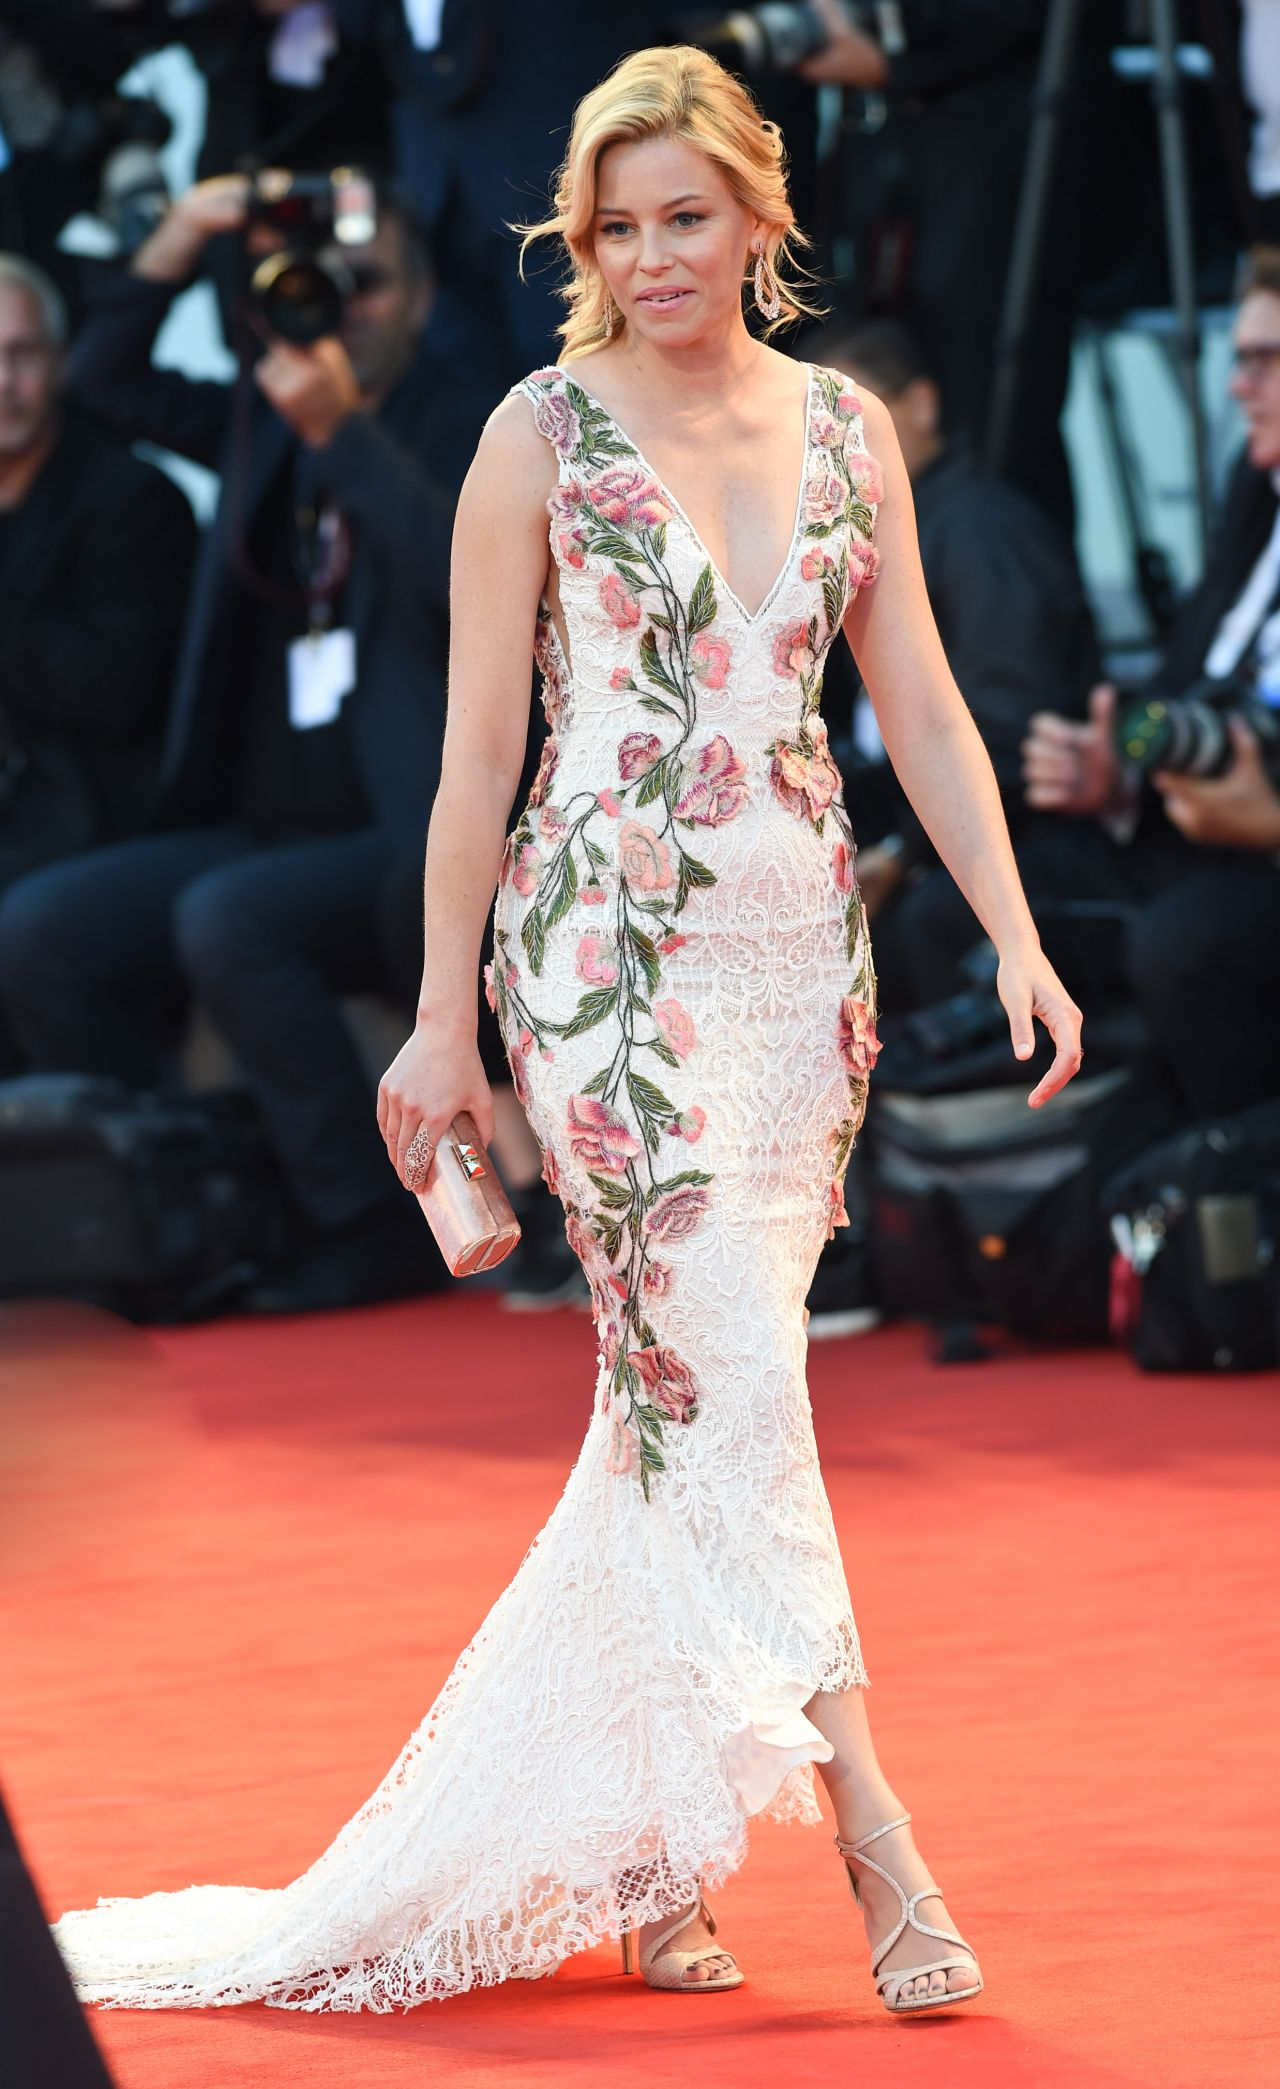 elizabeth-banks-a-bigger-splash-premiere-in-venice-italy_4